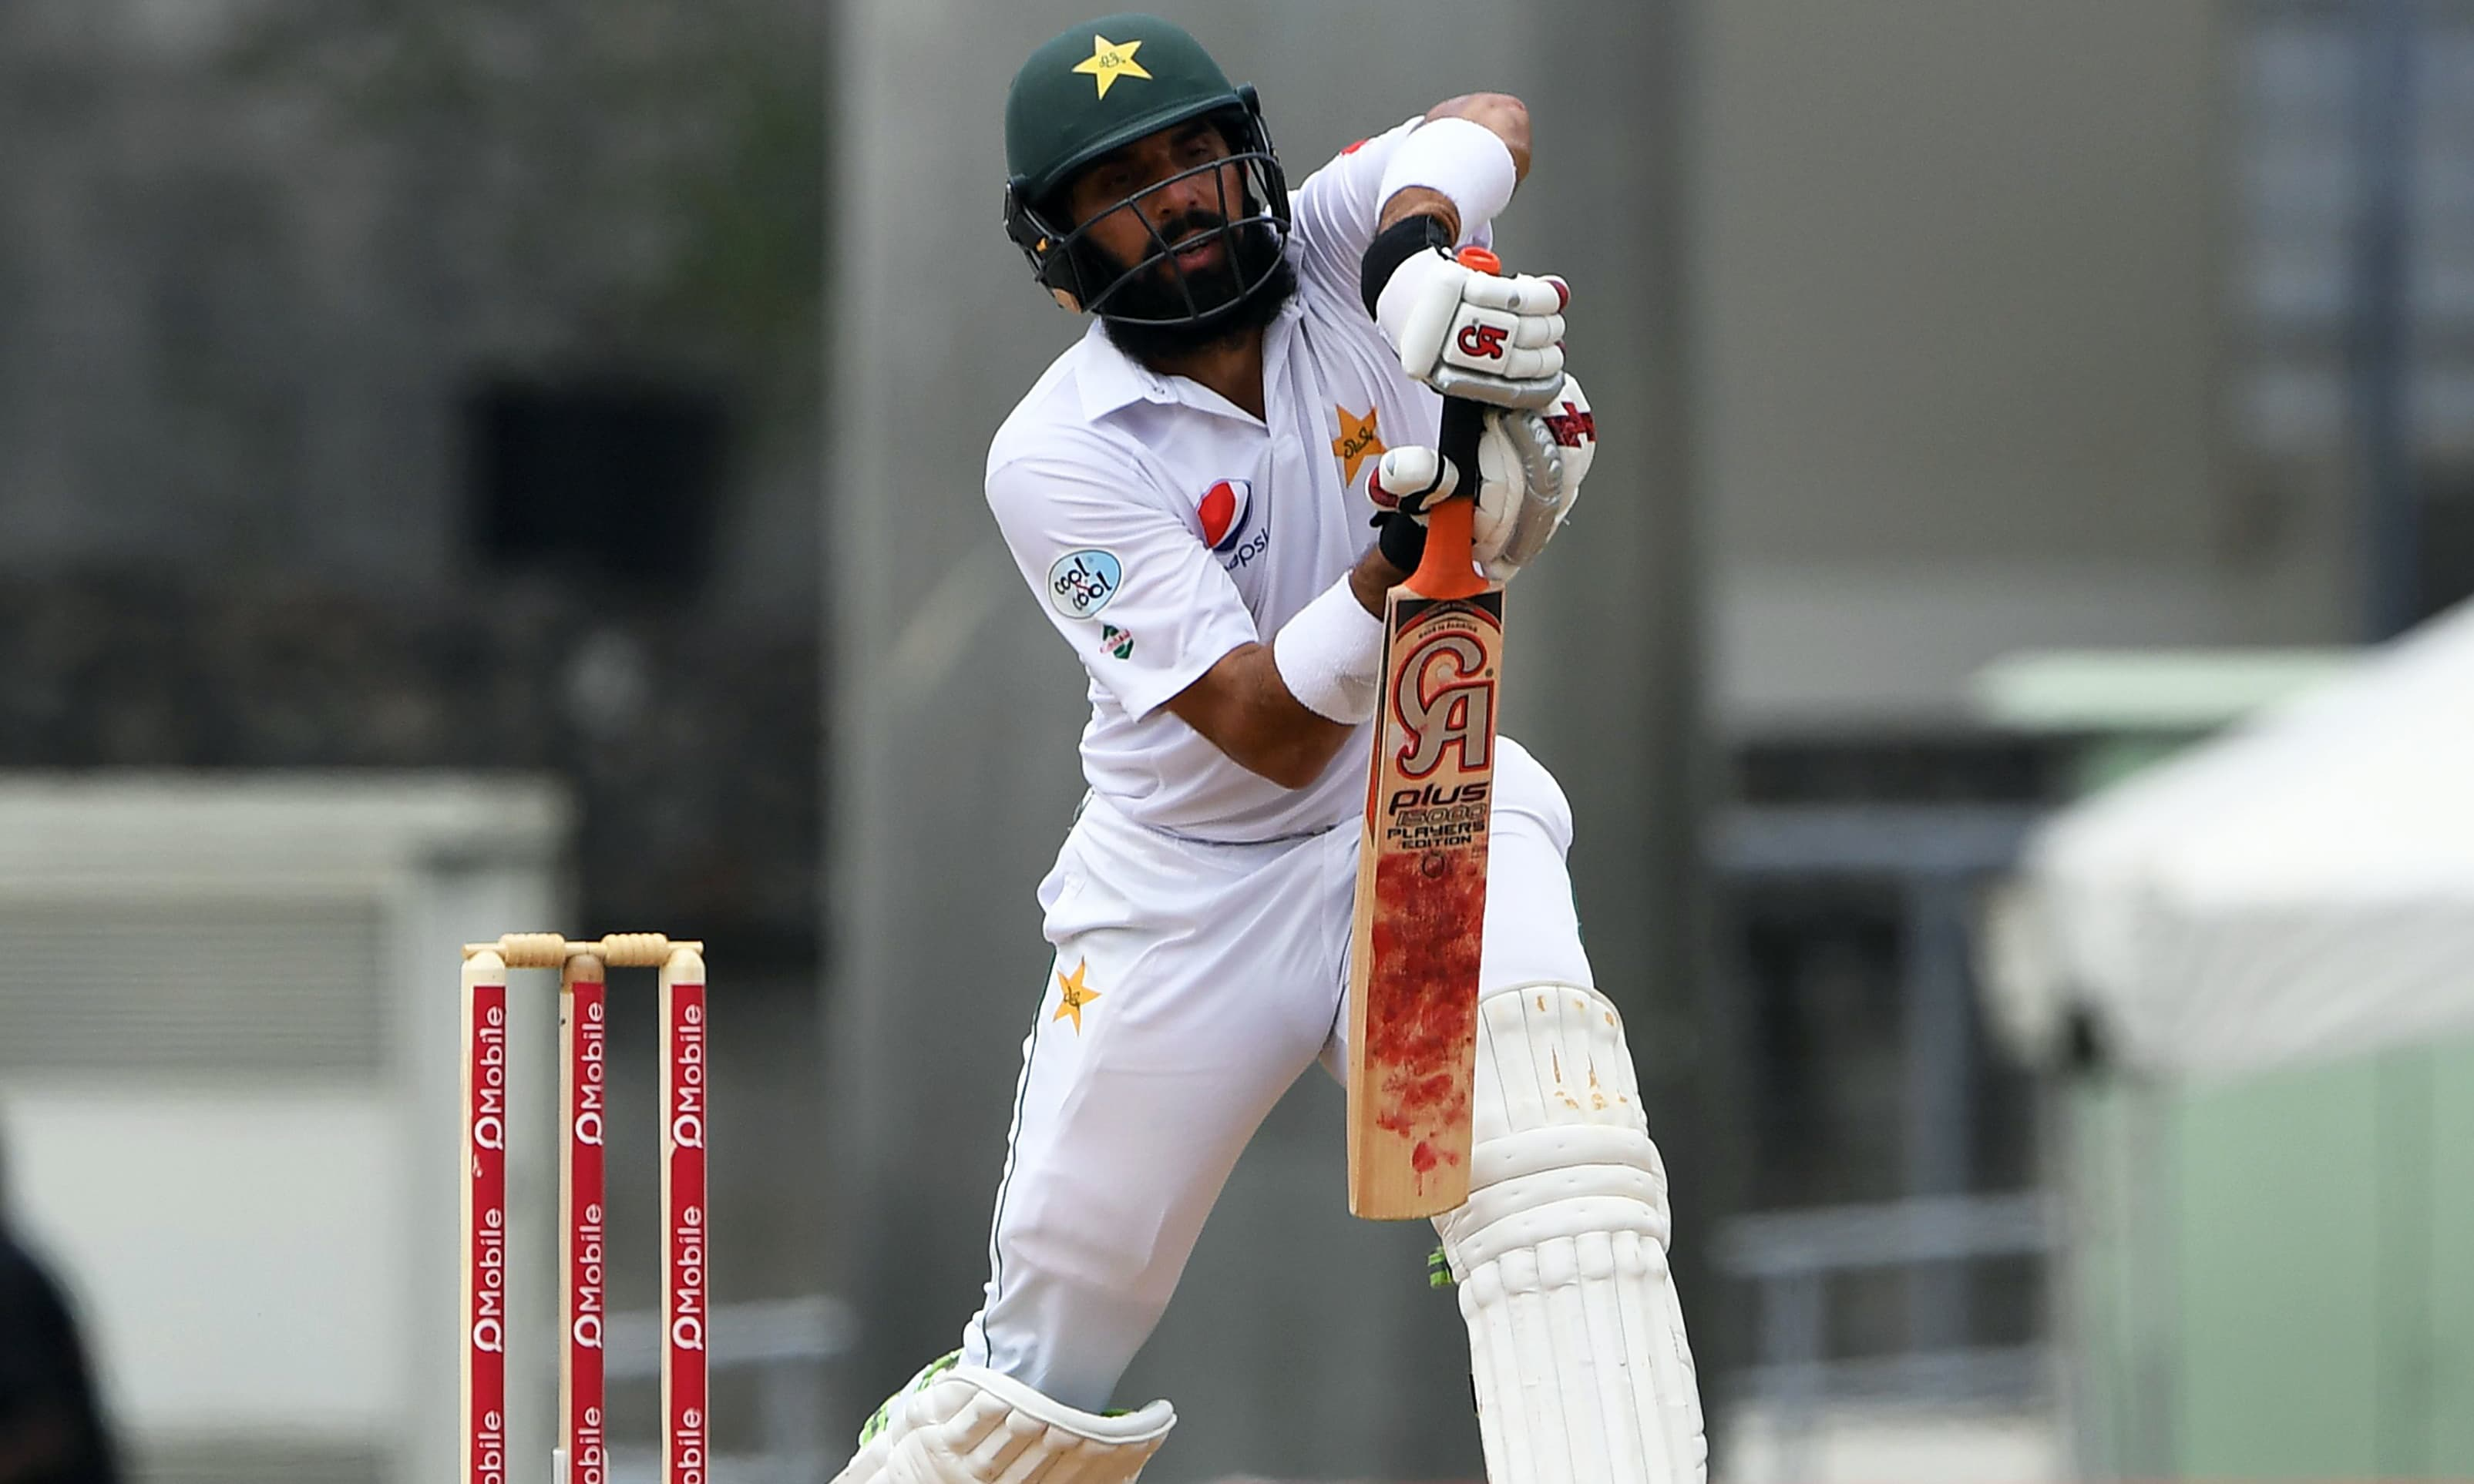 Misbah-ul-Haq plays a shot during his final test match. —AFP